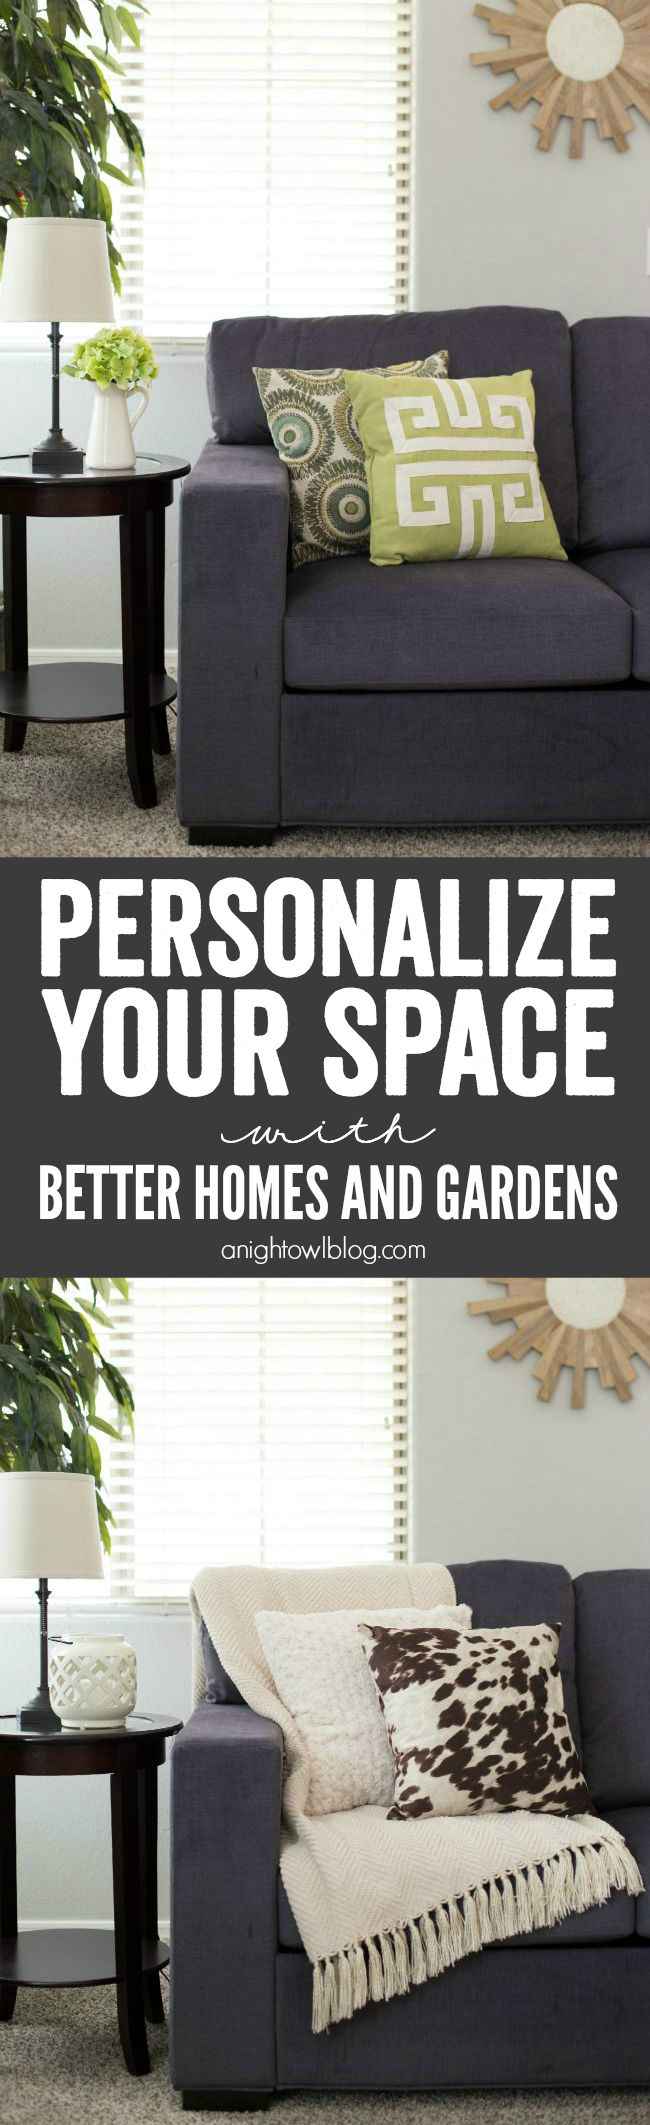 Personalize Your Space with BHG A Night Owl Blog